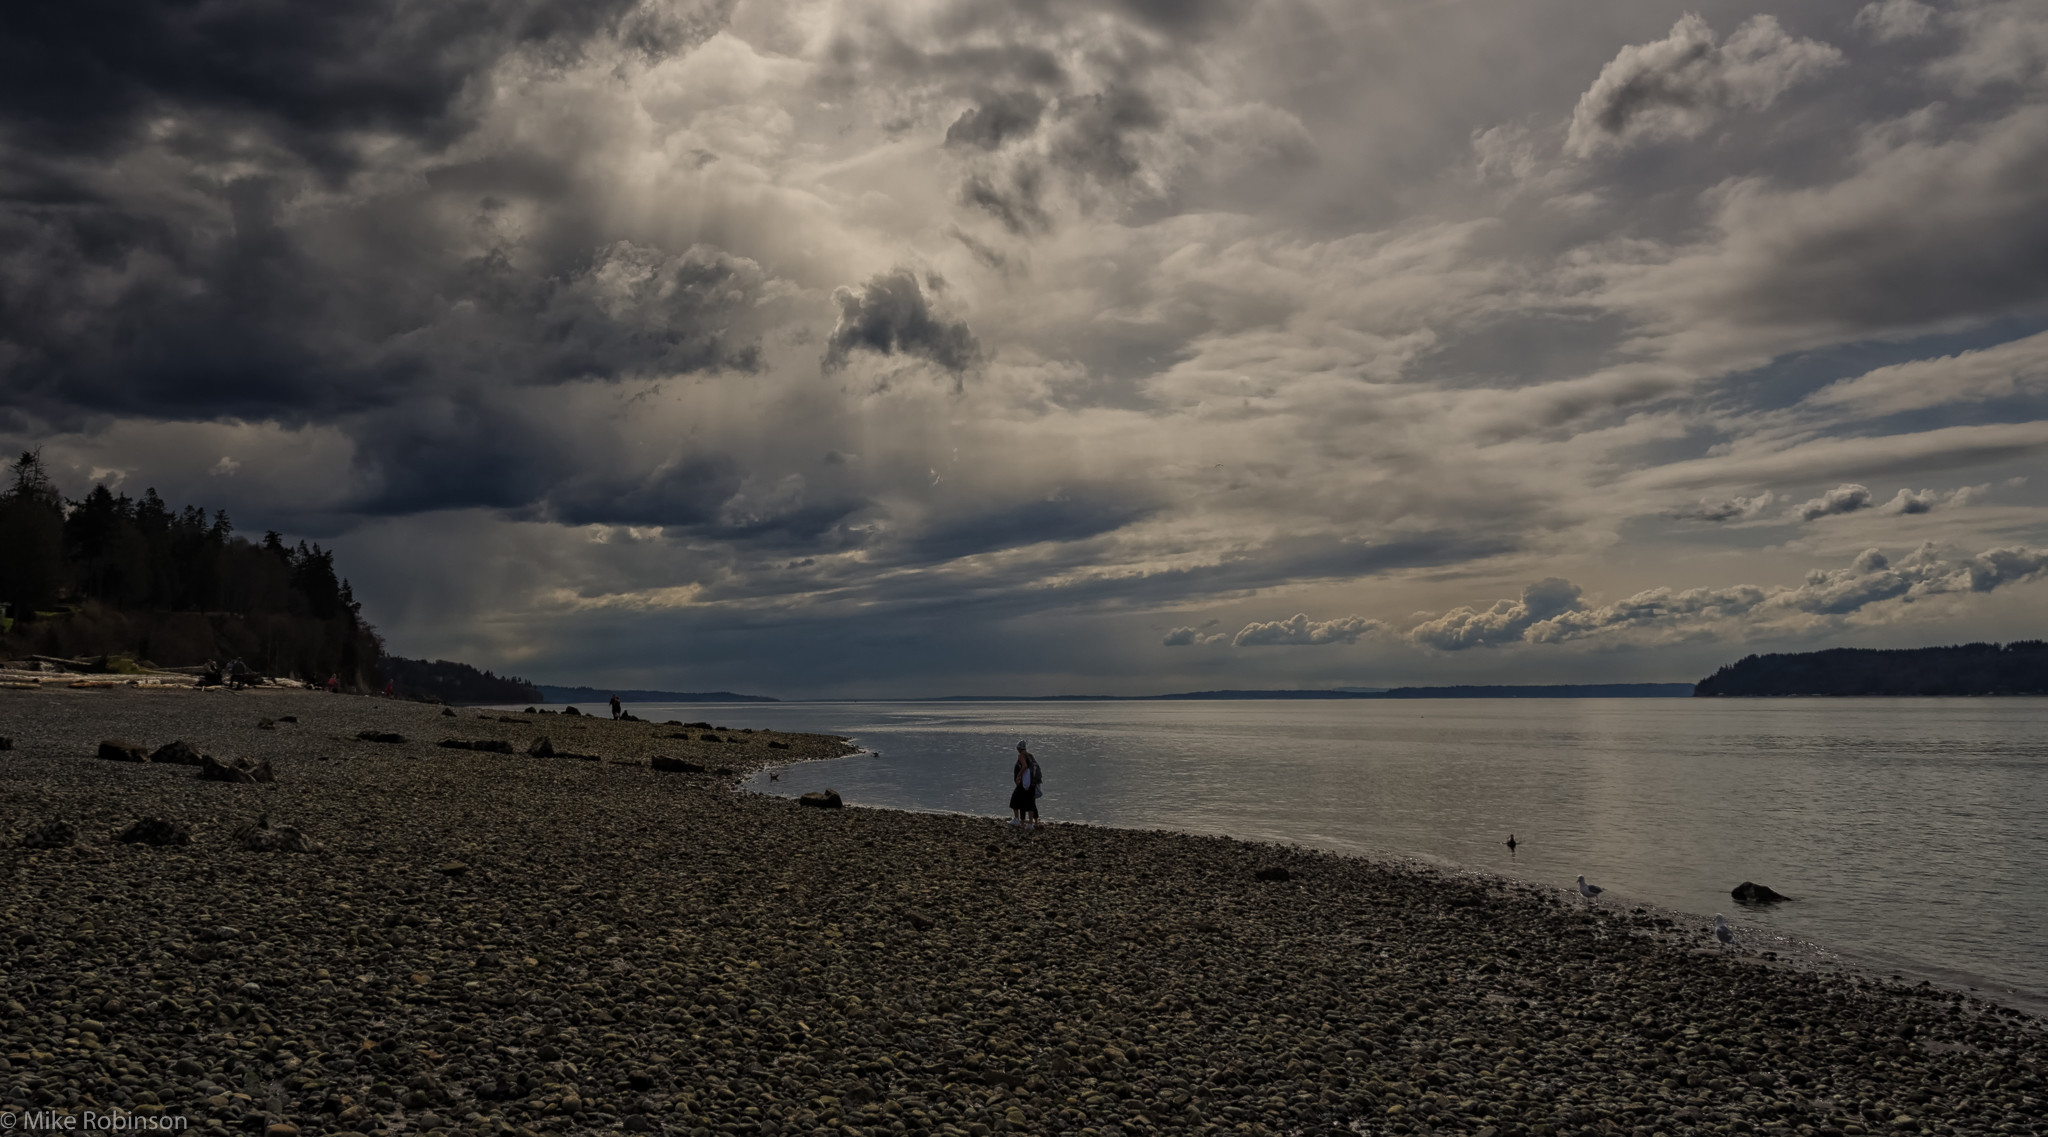 Puget_Sound_Rain_Color. I find myself missing the Pacific Northwest …